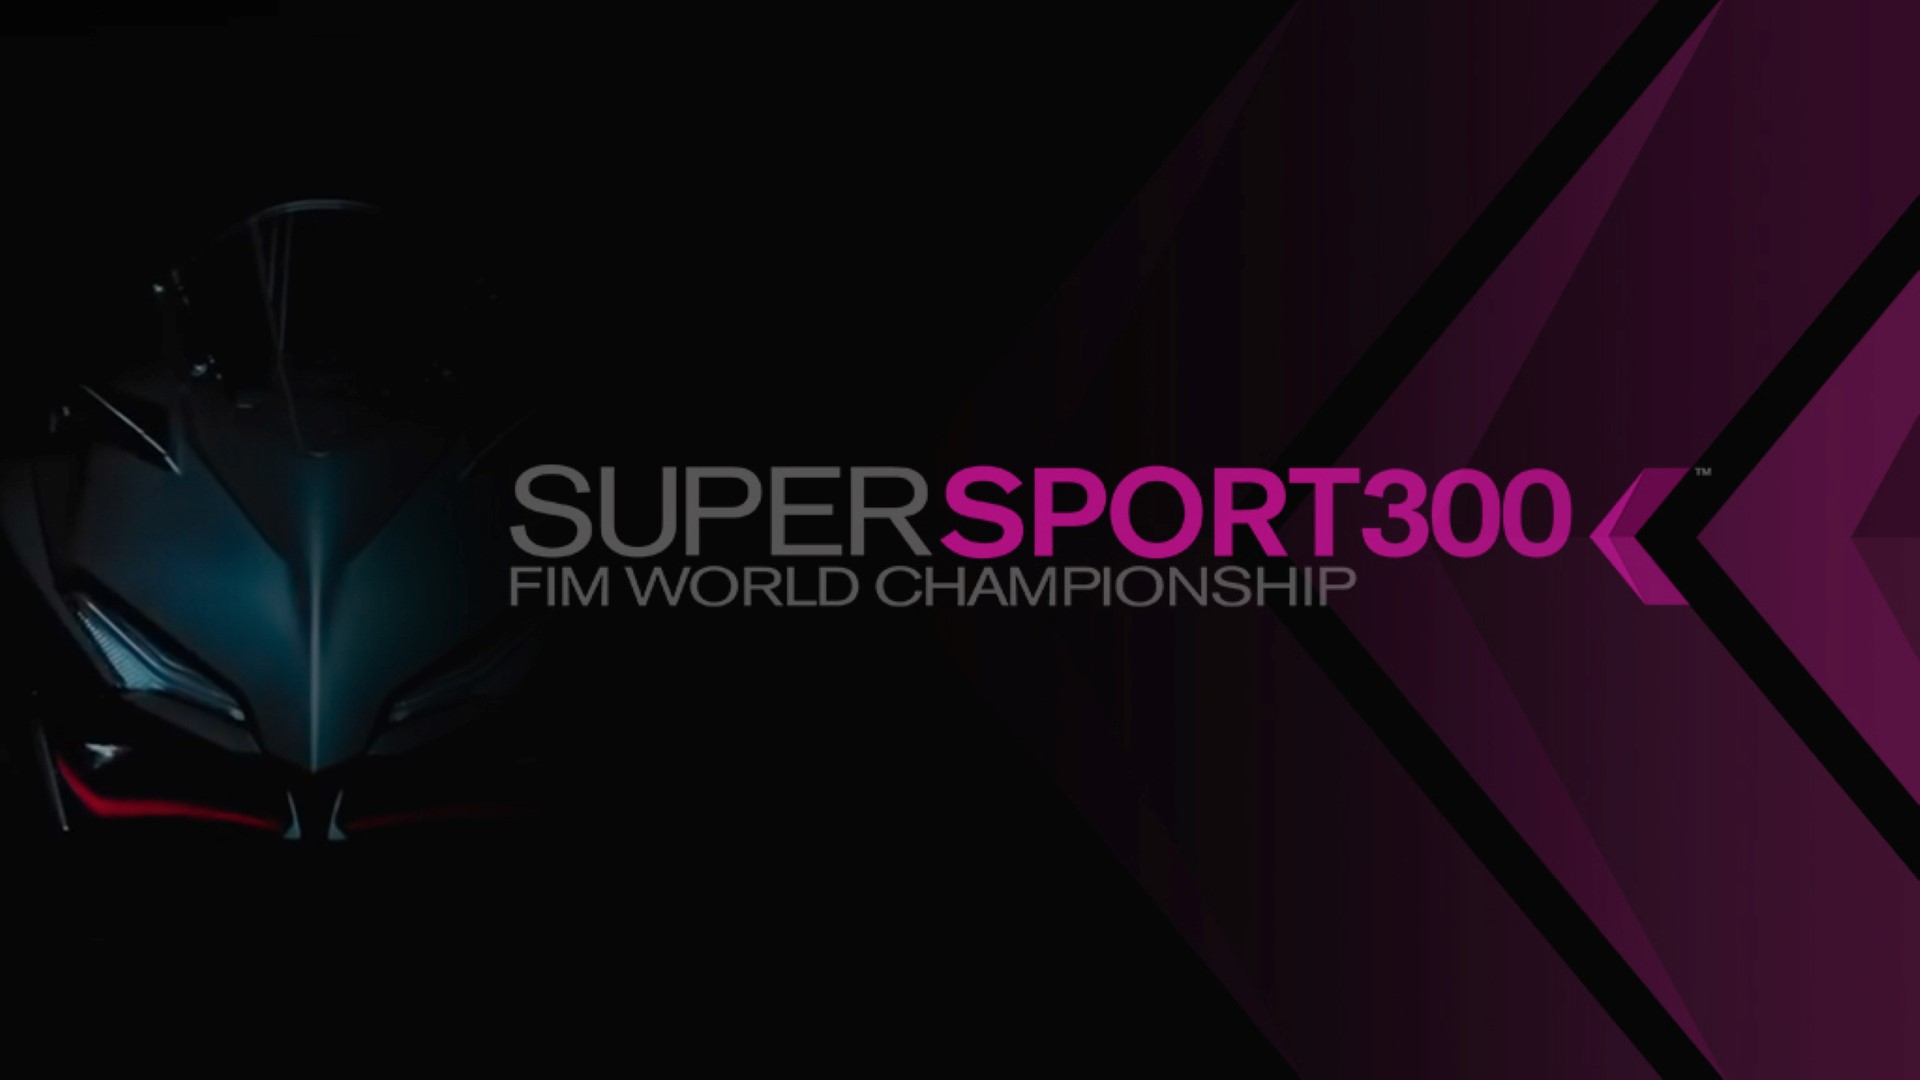 Nace el Mundial de Supersport 300